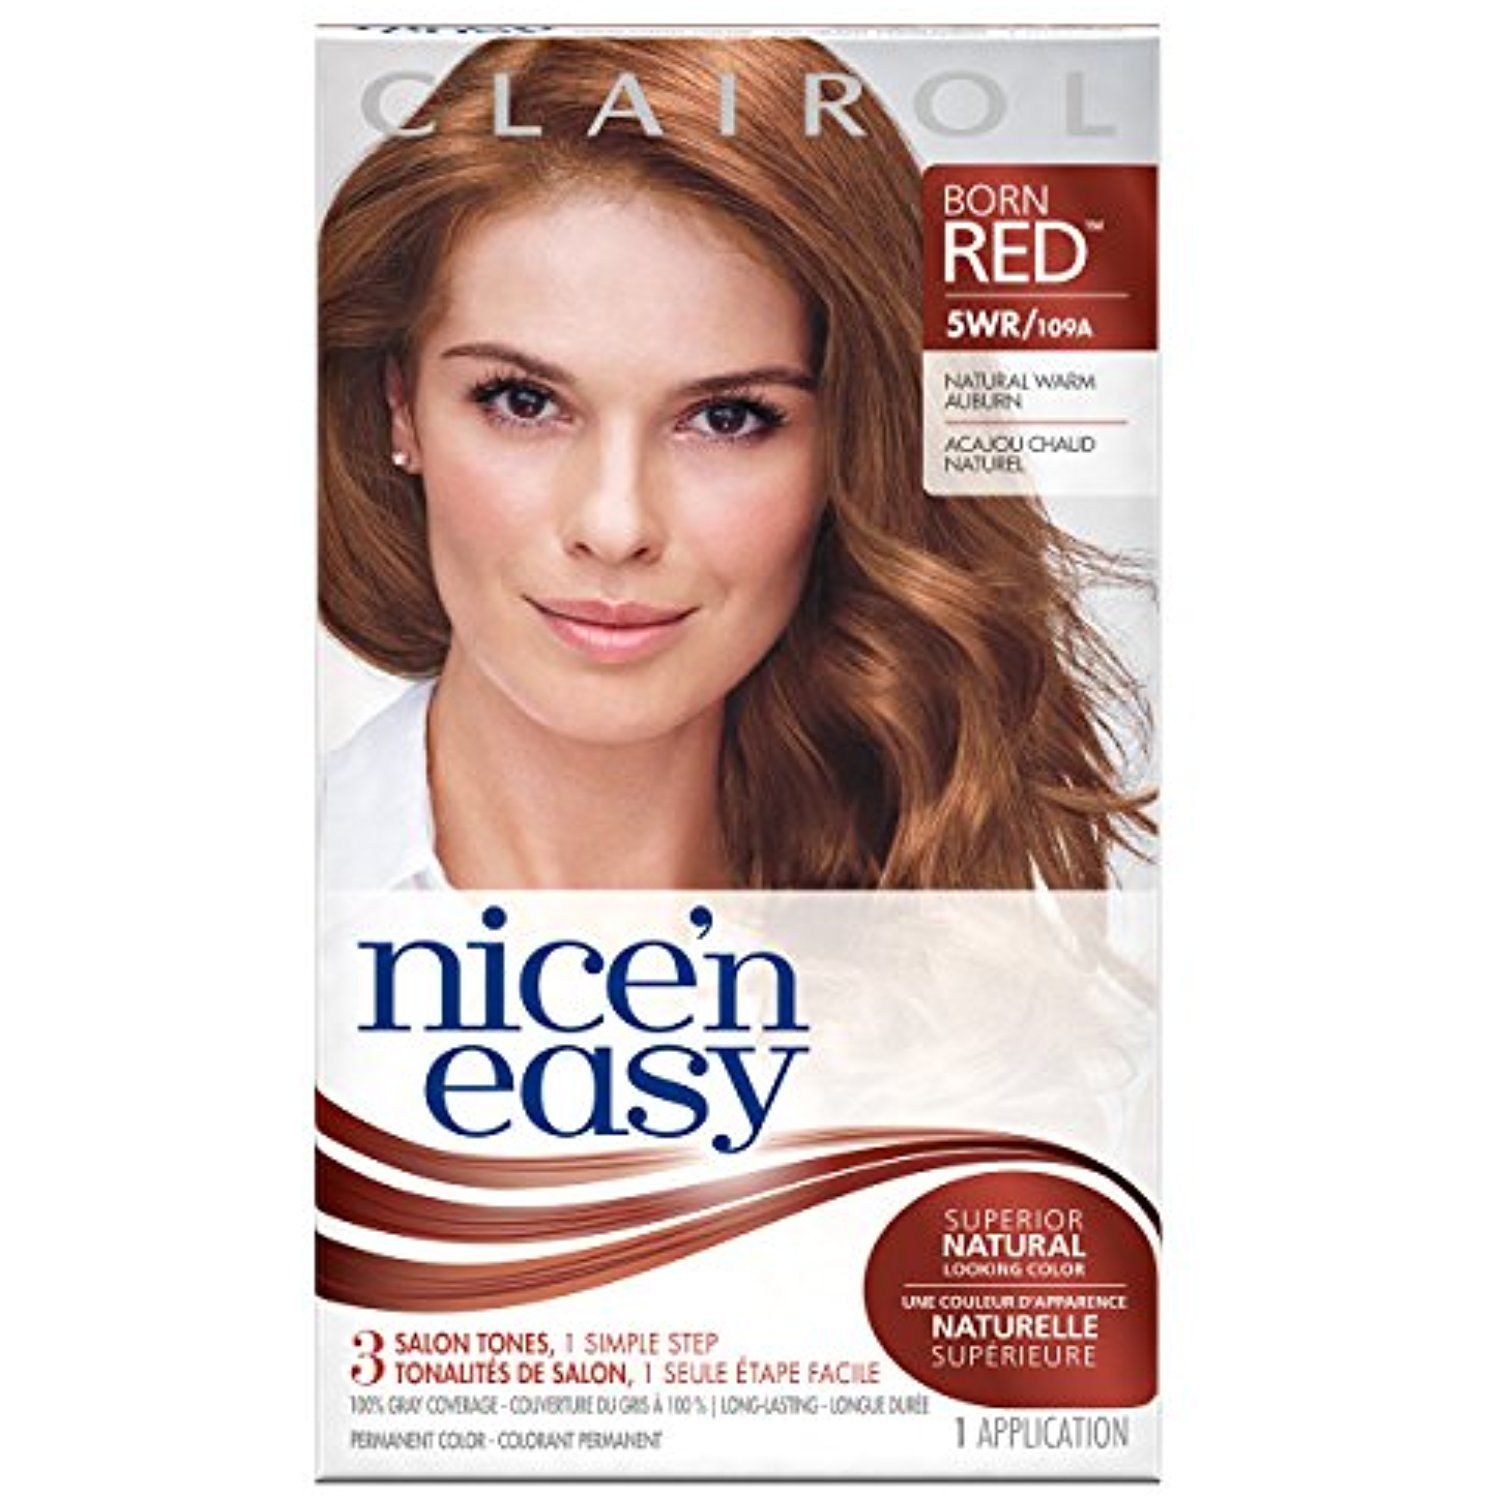 Clairol nice un easy permanent hair color natural warm auburn